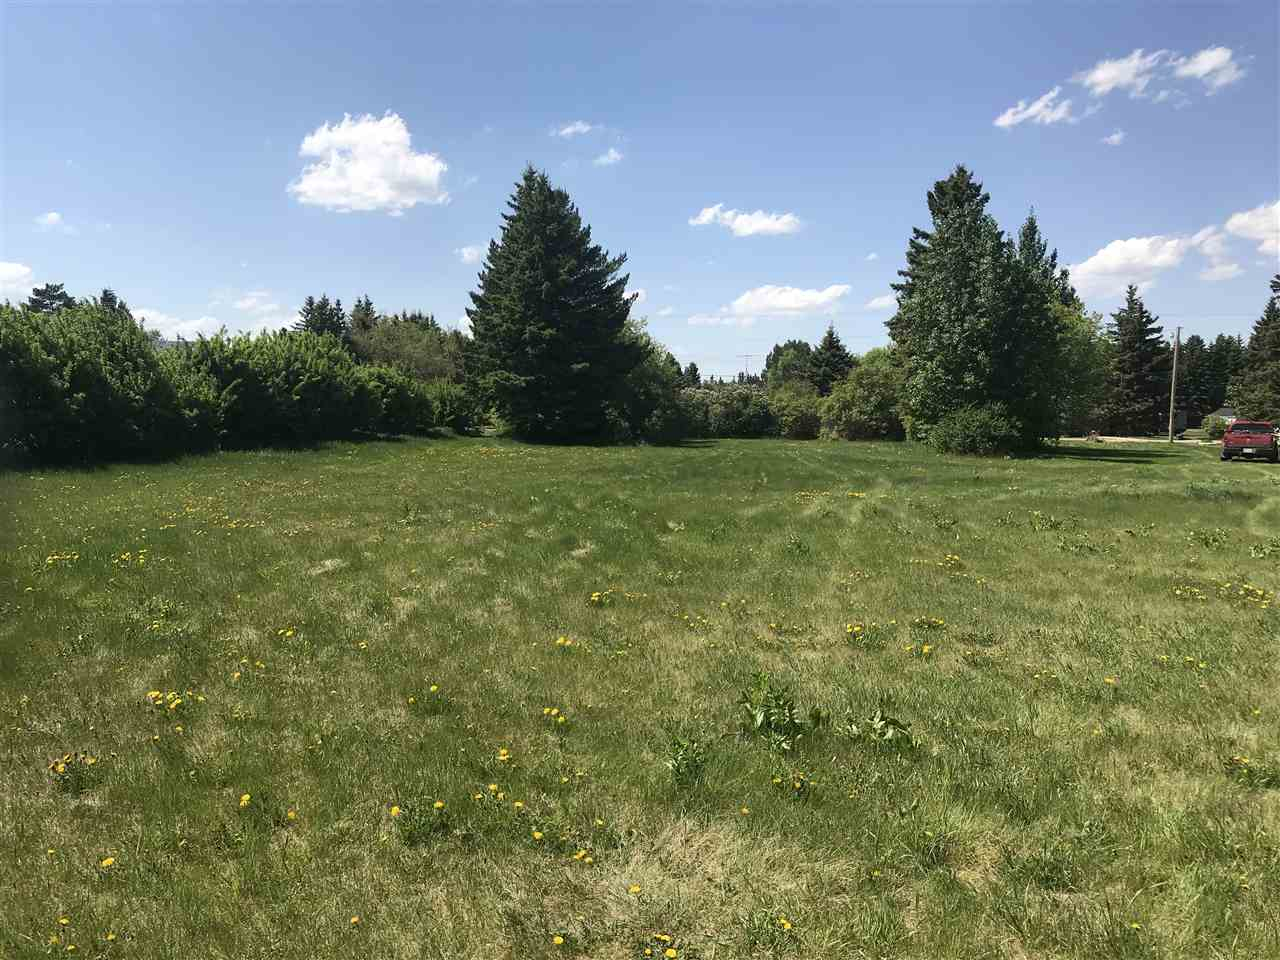 Large prime residential lot located on HWY 855 and 49 ave in the town of Andrew. This lot is comprised approximately 1.06 acres and is priced right!